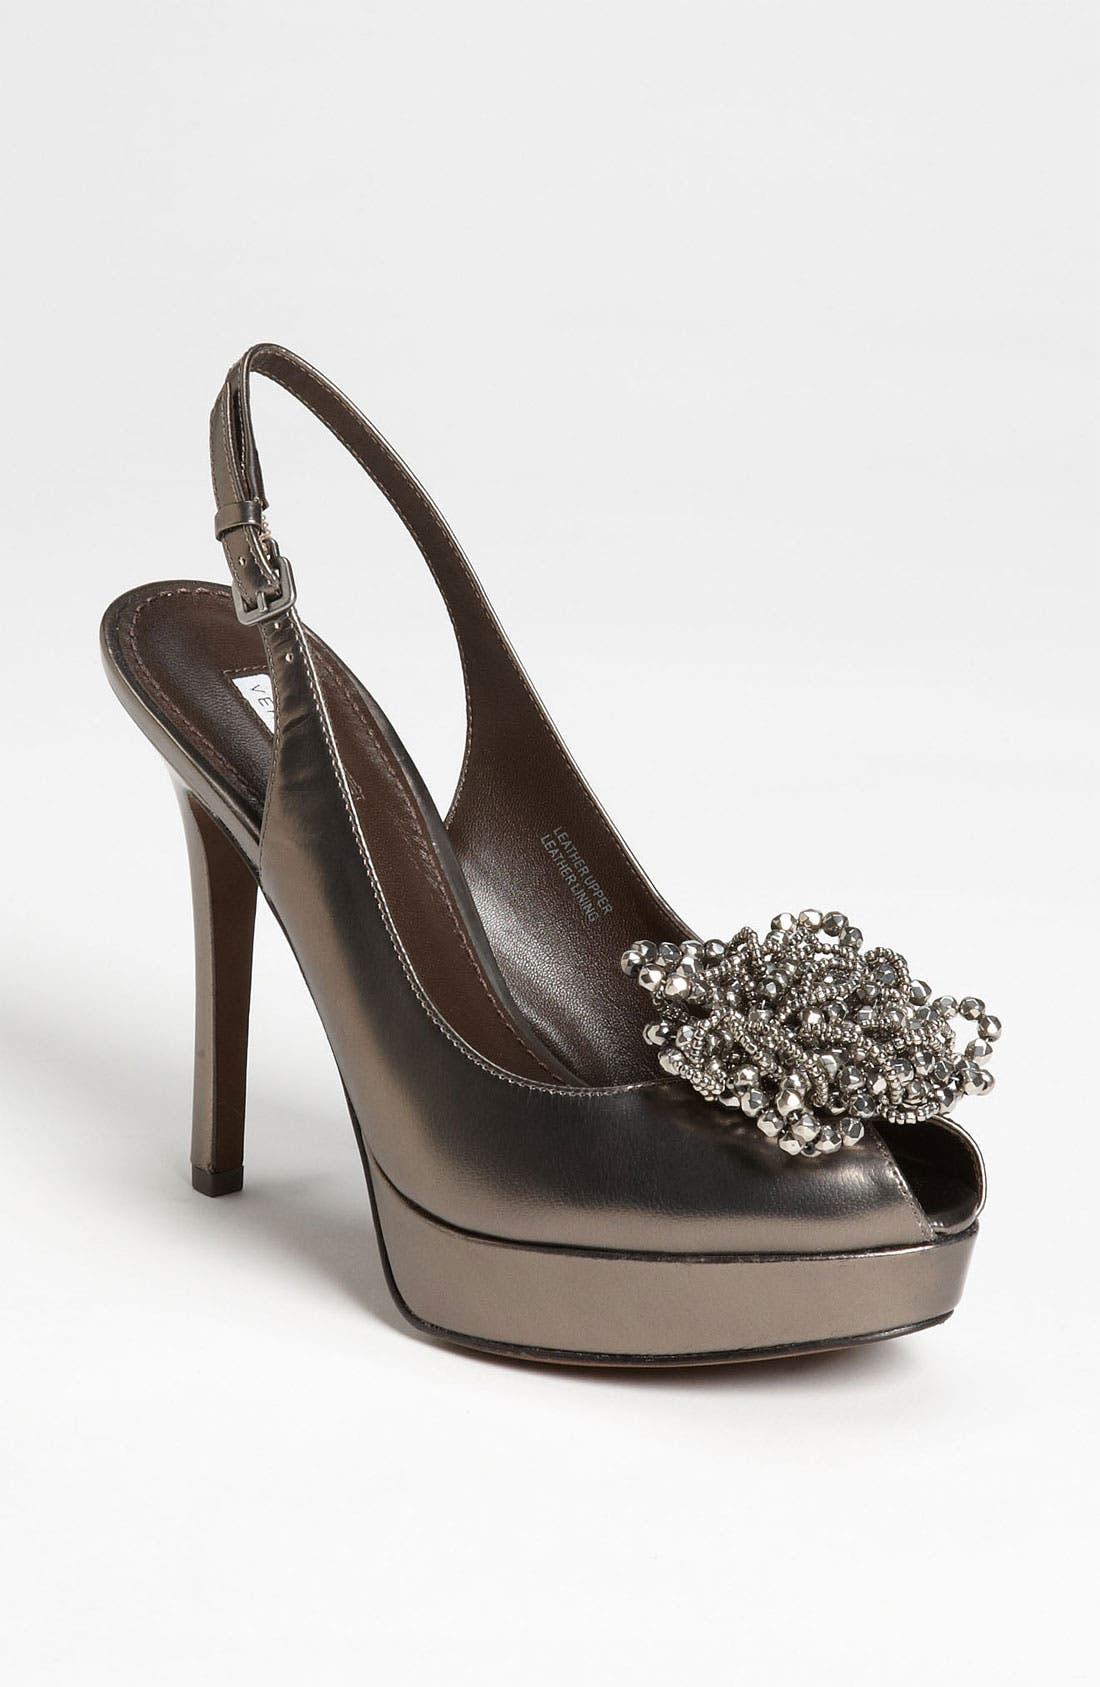 Alternate Image 1 Selected - Vera Wang Footwear 'Melody' Pump